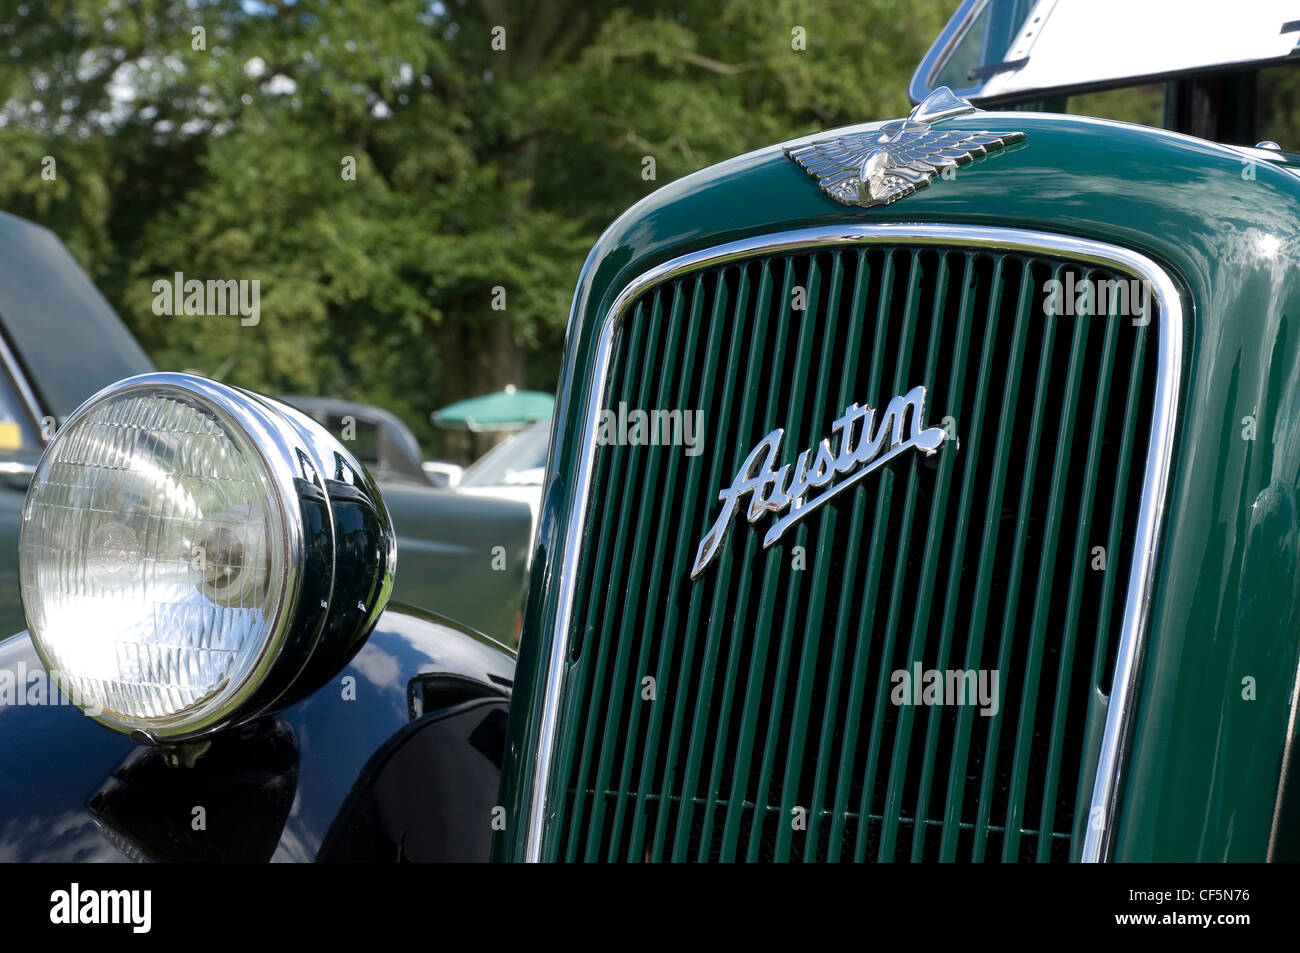 The front radiator grill and headlamp of a green Austin Seven vintage car. - Stock Image